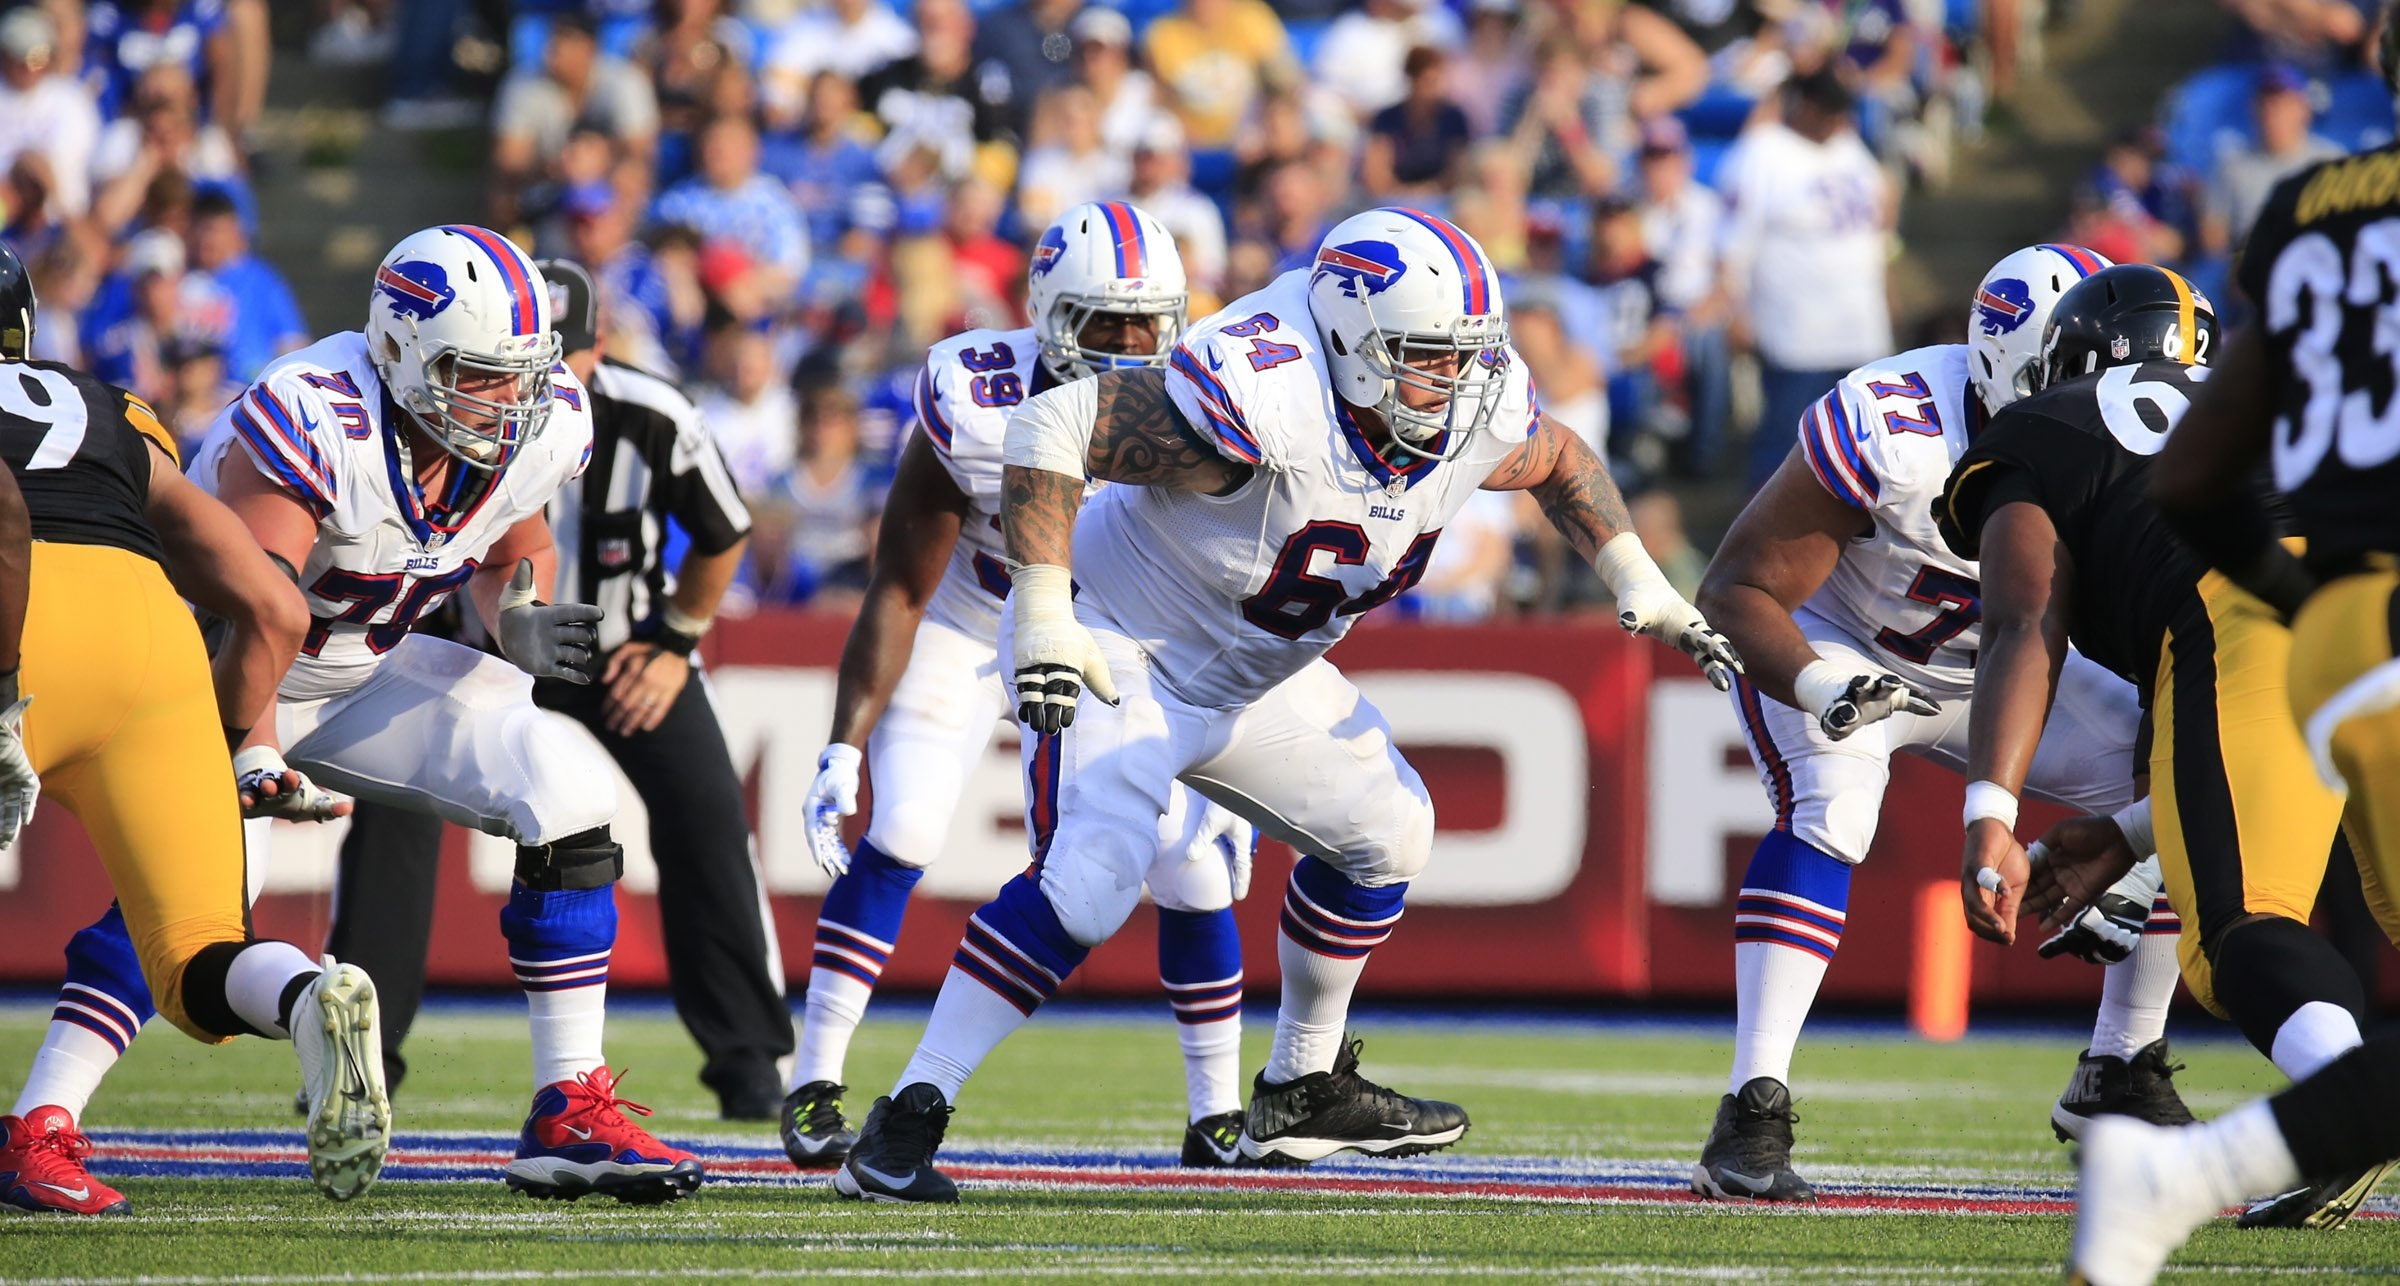 Eric Wood and Richie Incognito are two of the cogs on a retooled offensive line that's determined to craft a fearsome identity.